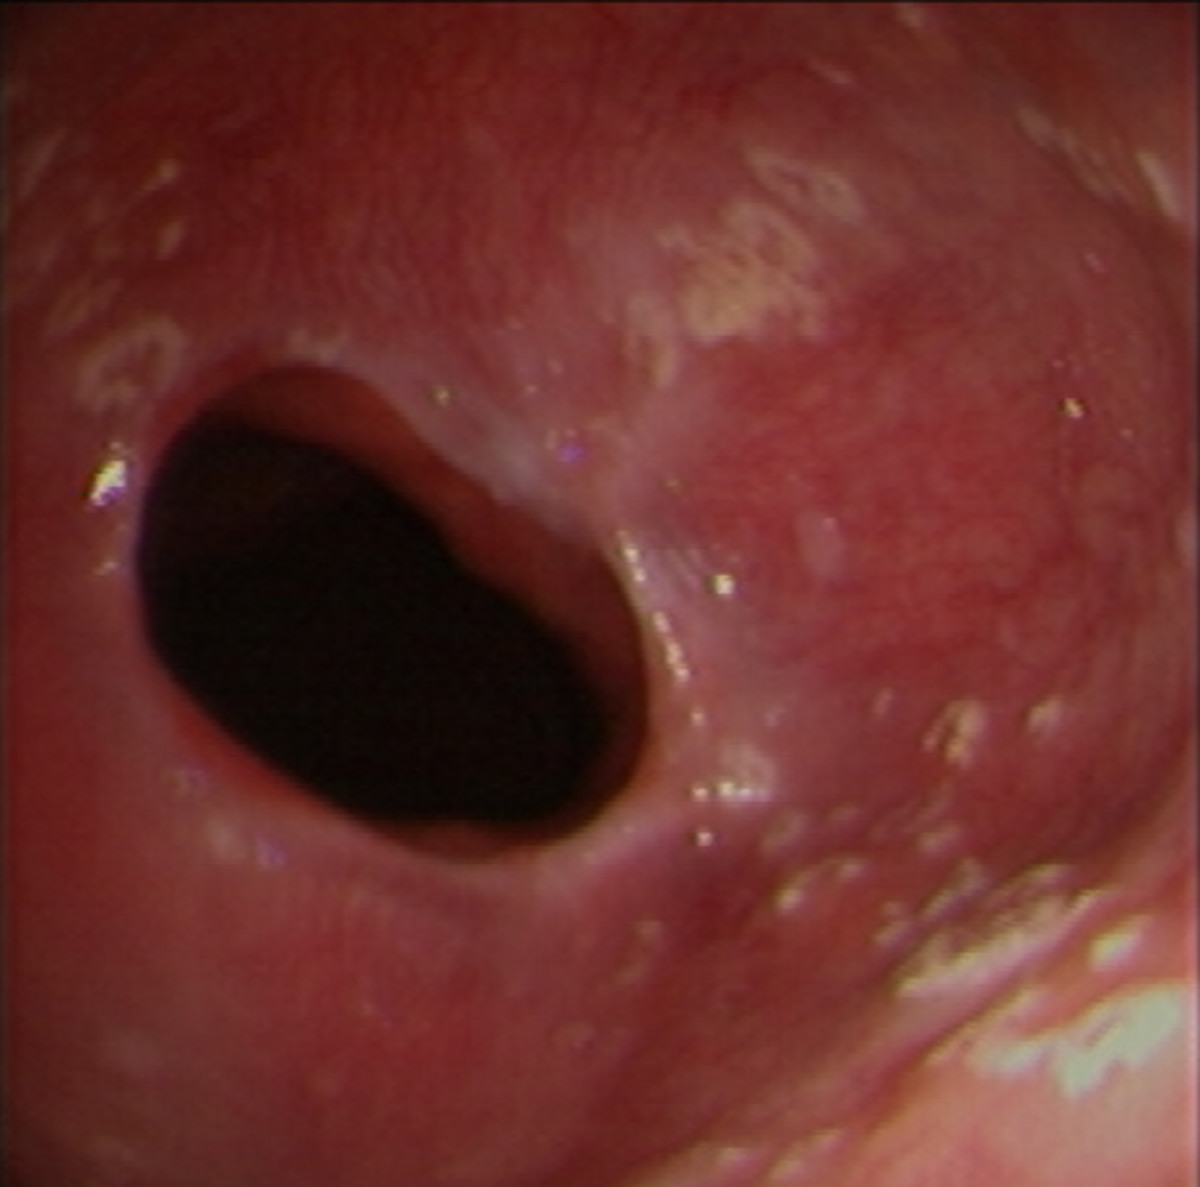 Candida on the esophagus (white patches)